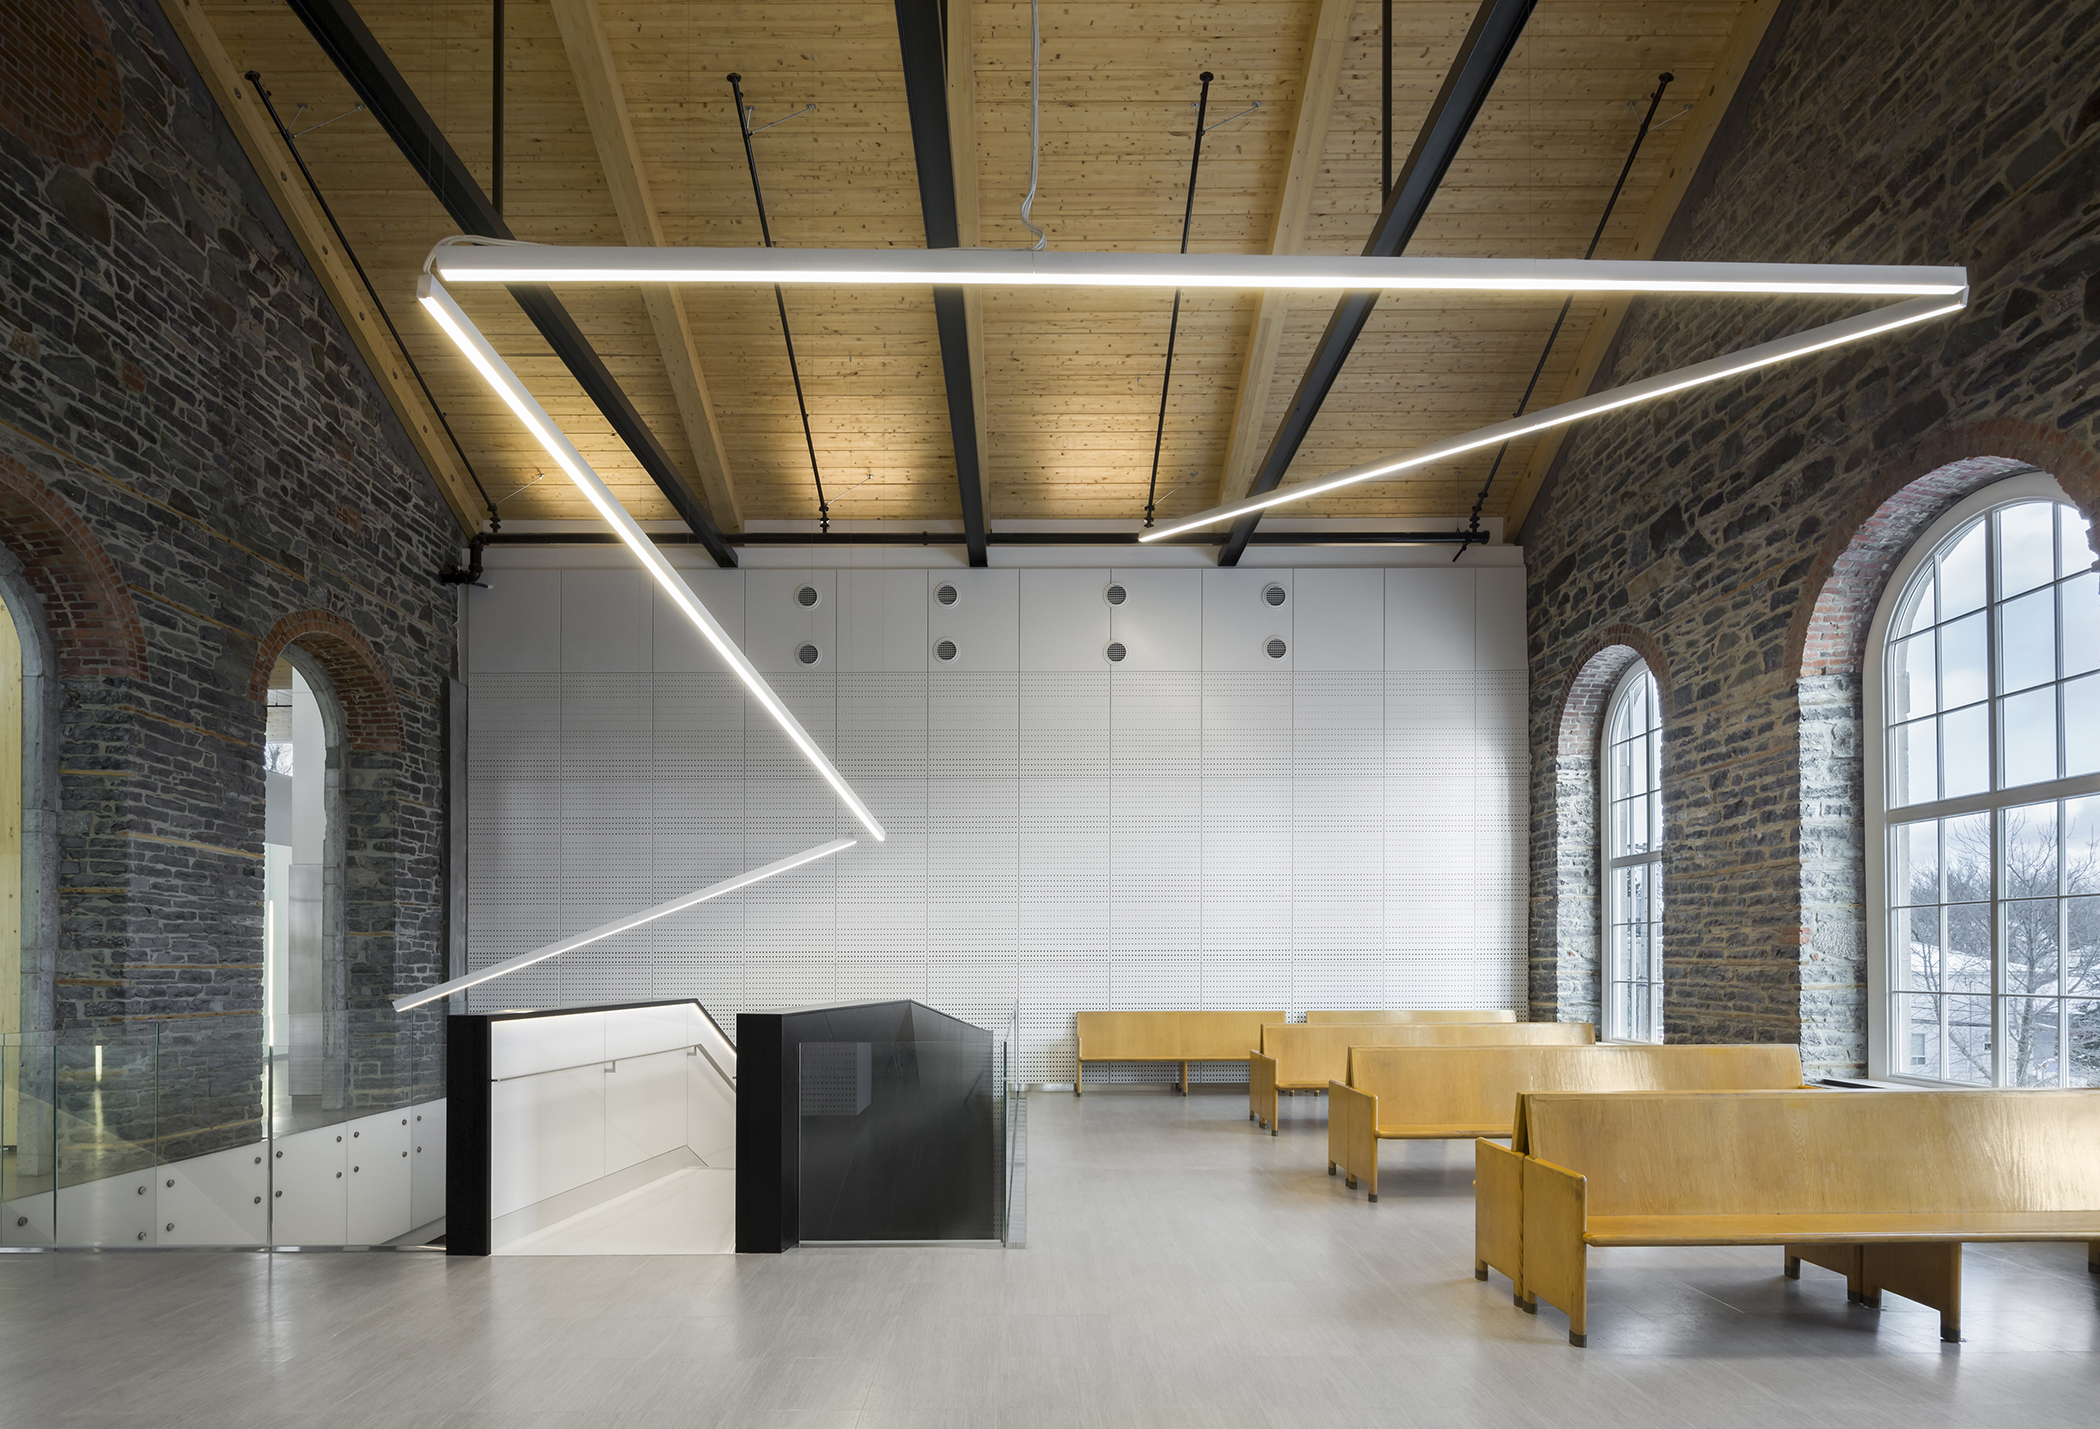 PalaisdejusticedeMontmagny Cecobois 4